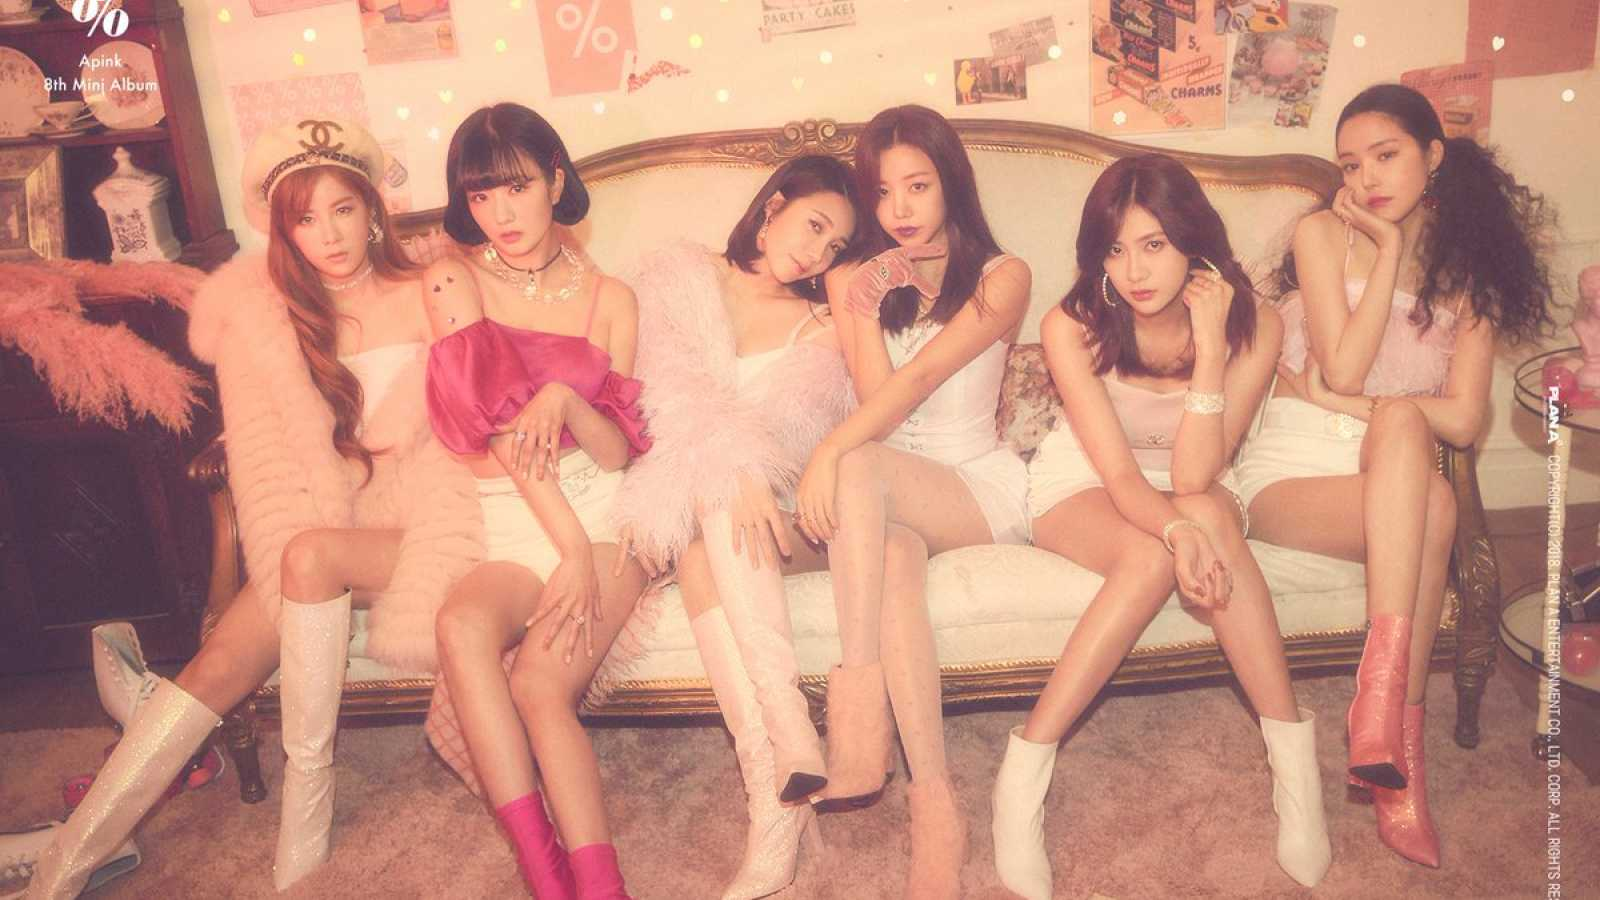 Apink © Plan A Entertainment. All rights reserved